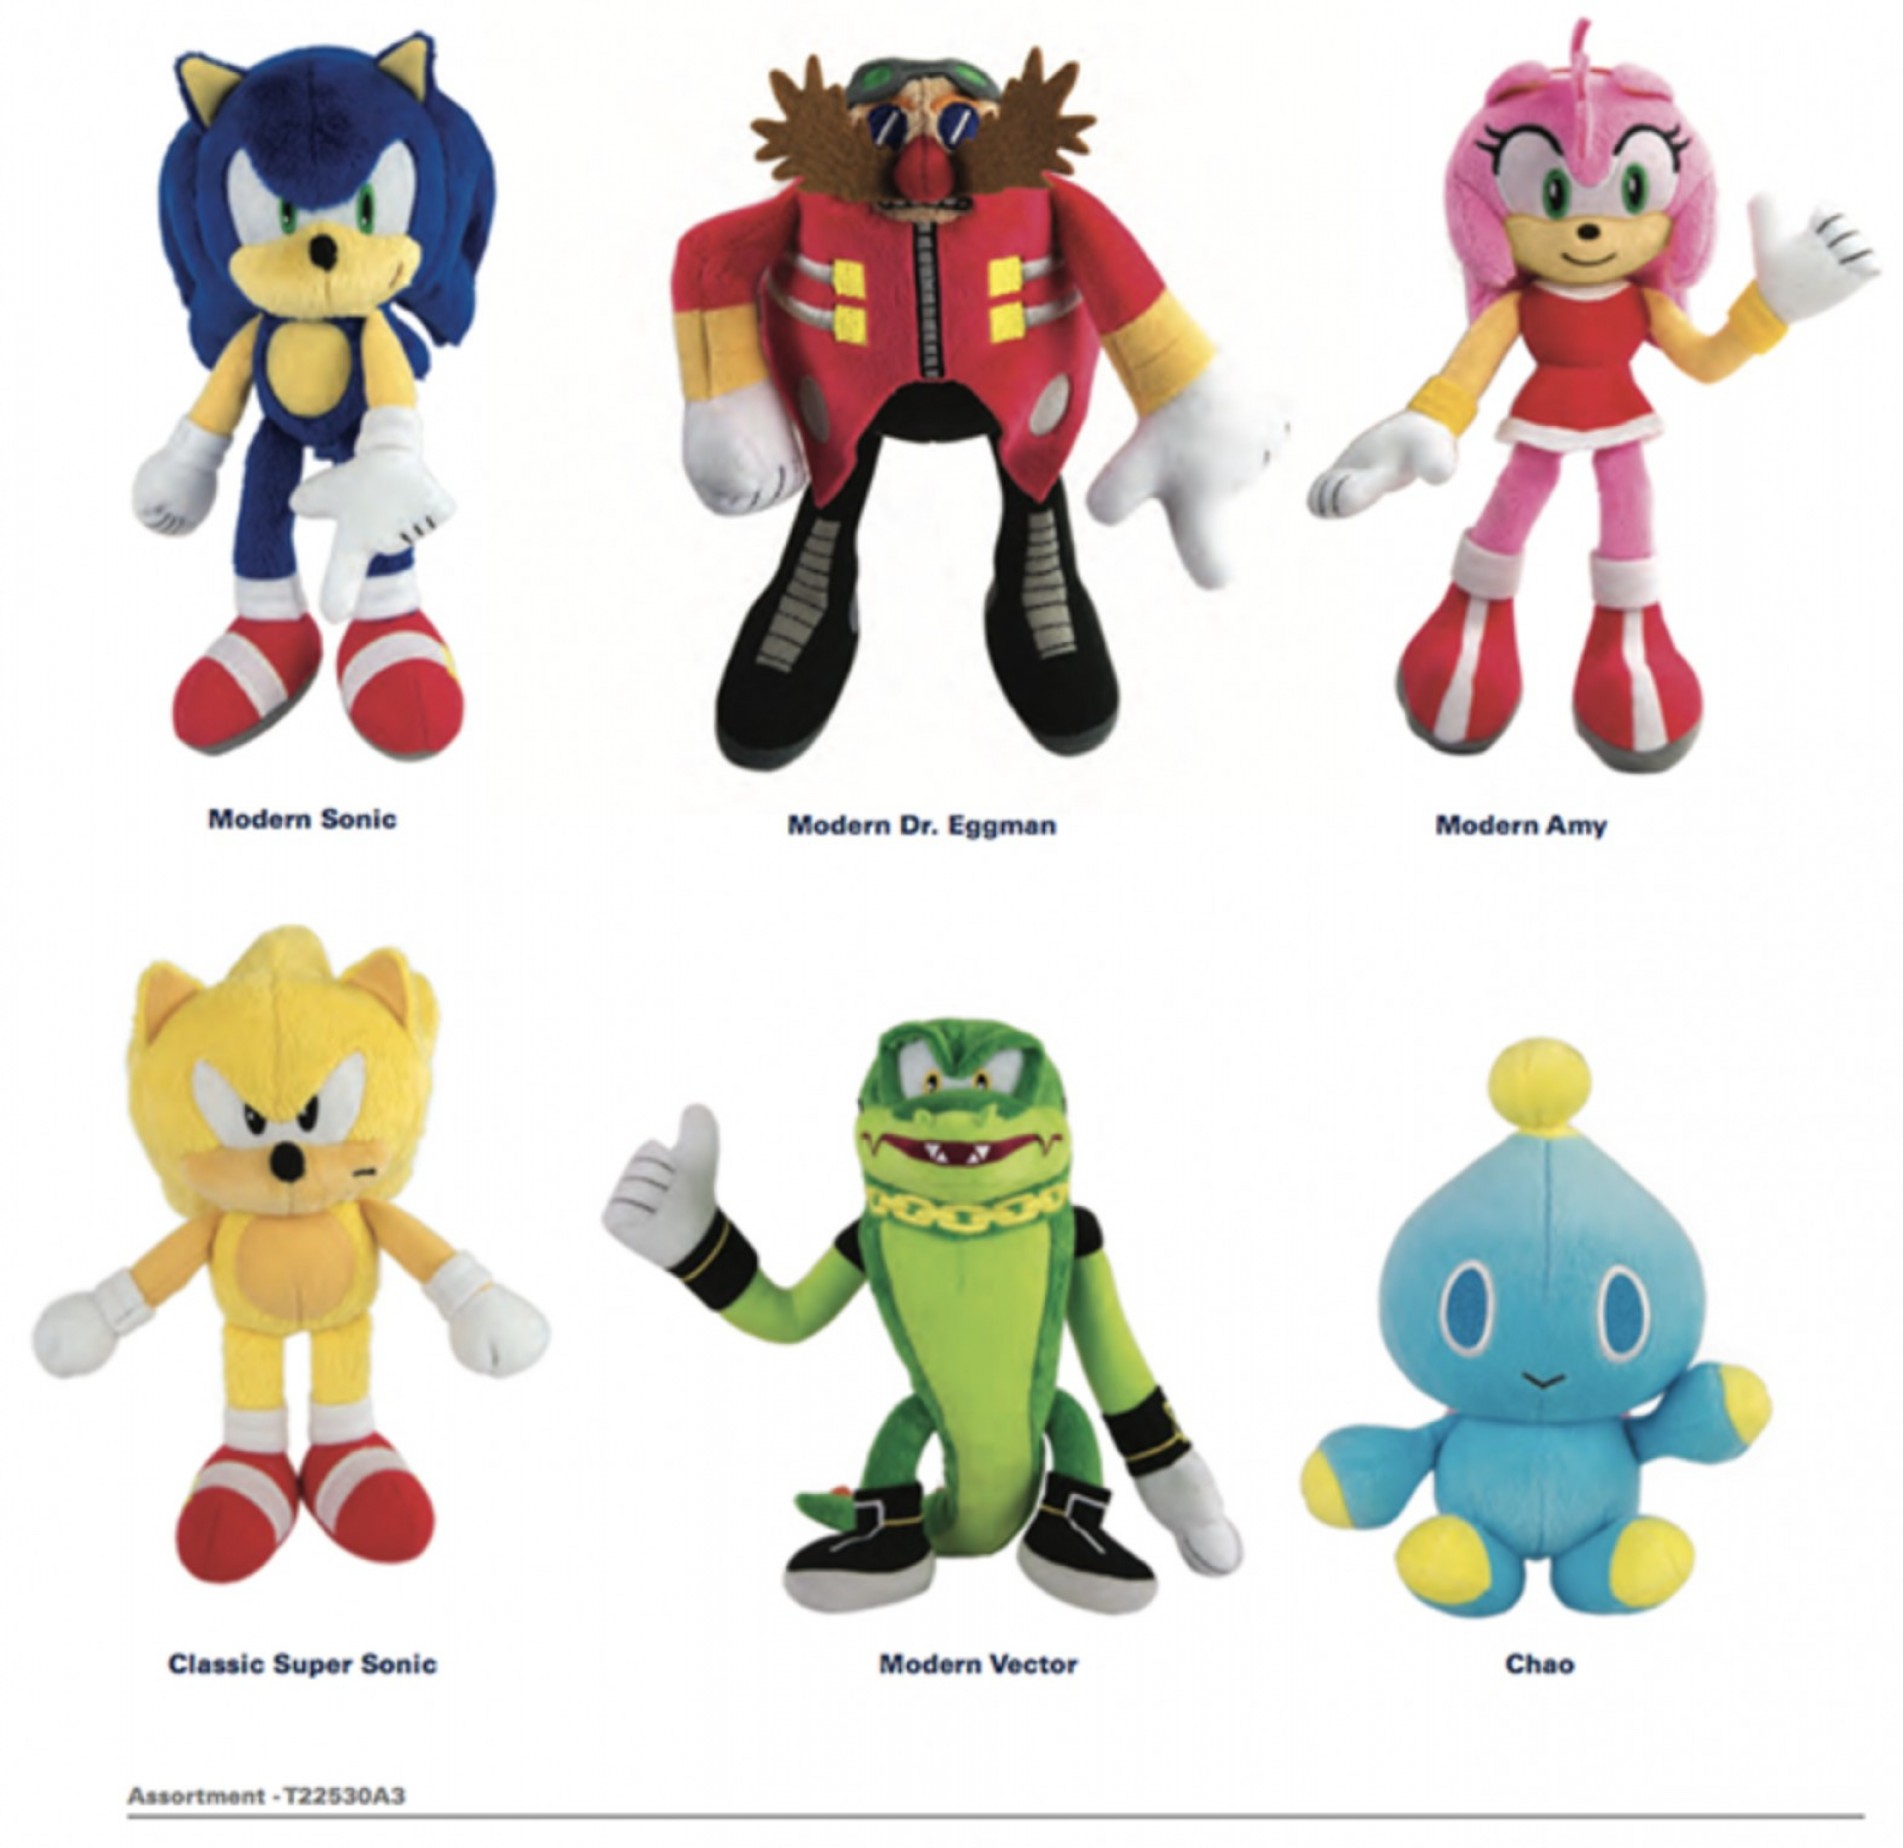 Vector And Espio Toy: Tomy Reveals New Sonic The Hedgehog Action Figures Plush Toys And Comic Books For